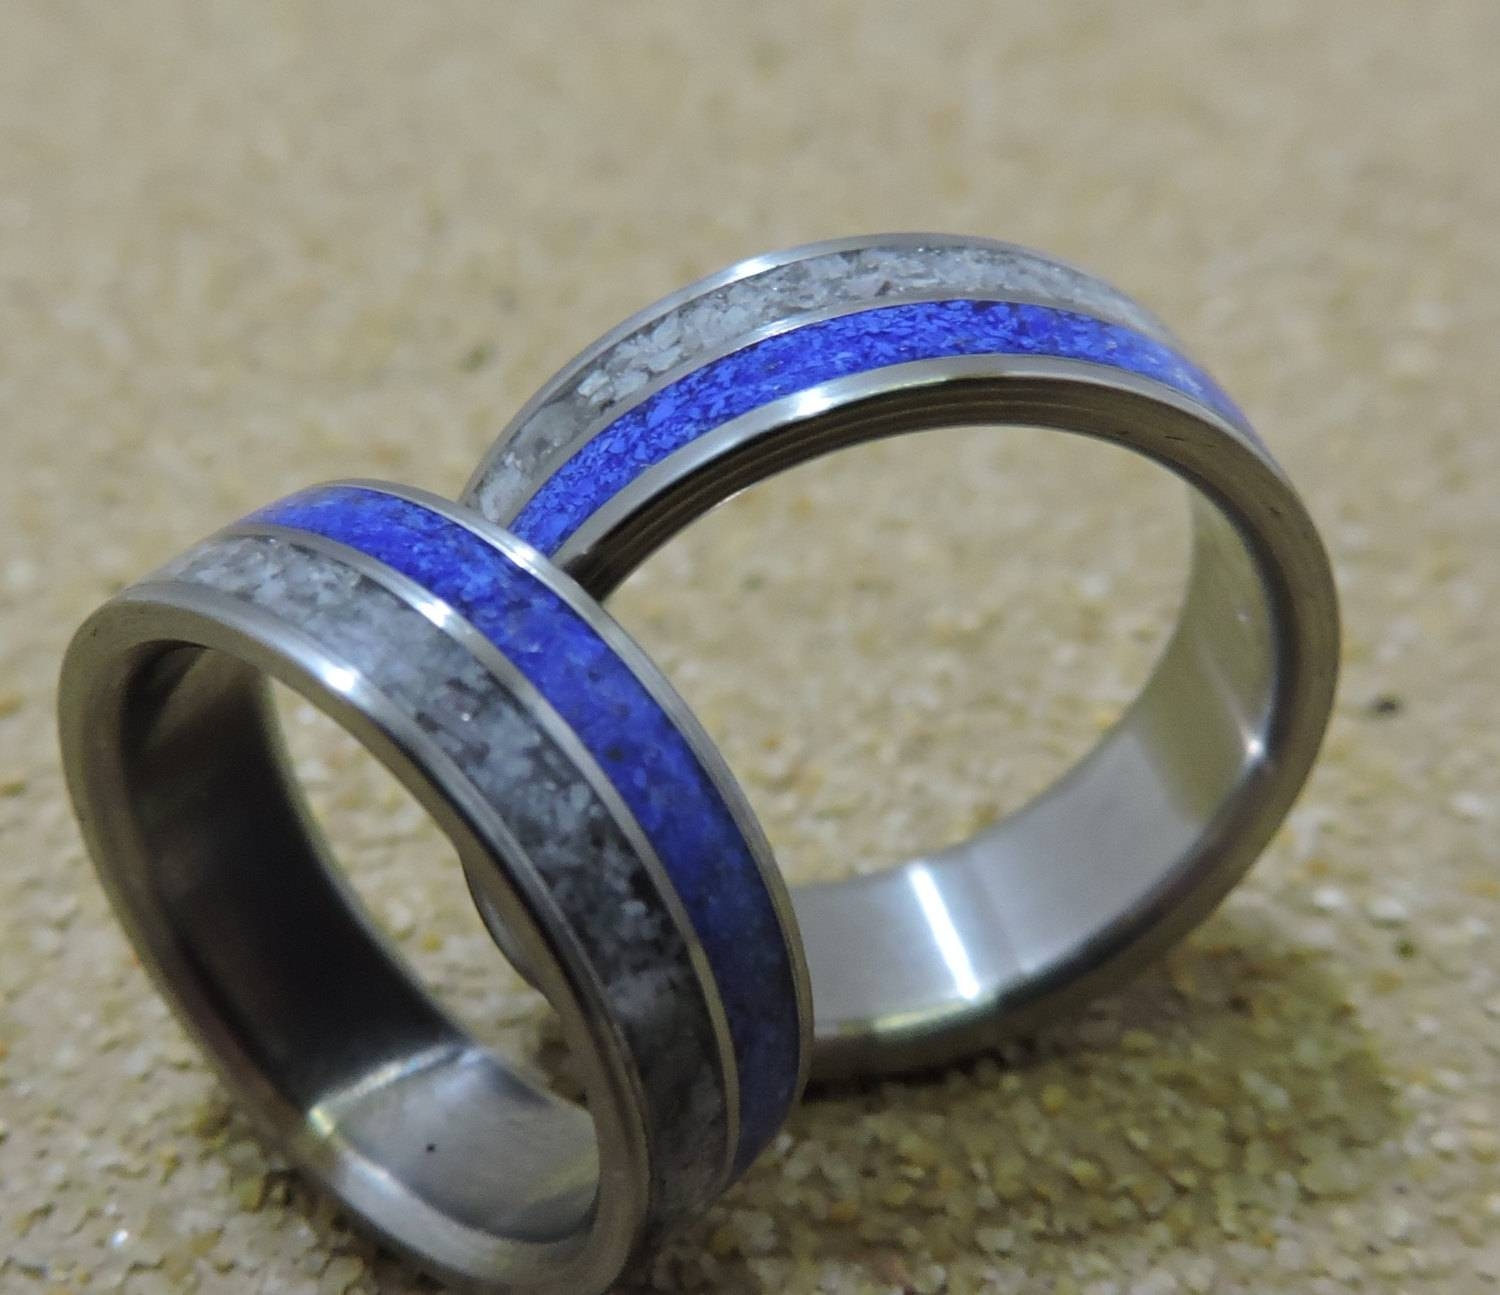 Titanium Rings, Wedding Rings, His And Hers Rings, Wedding Band Throughout Mens Handmade Wedding Bands (View 6 of 15)